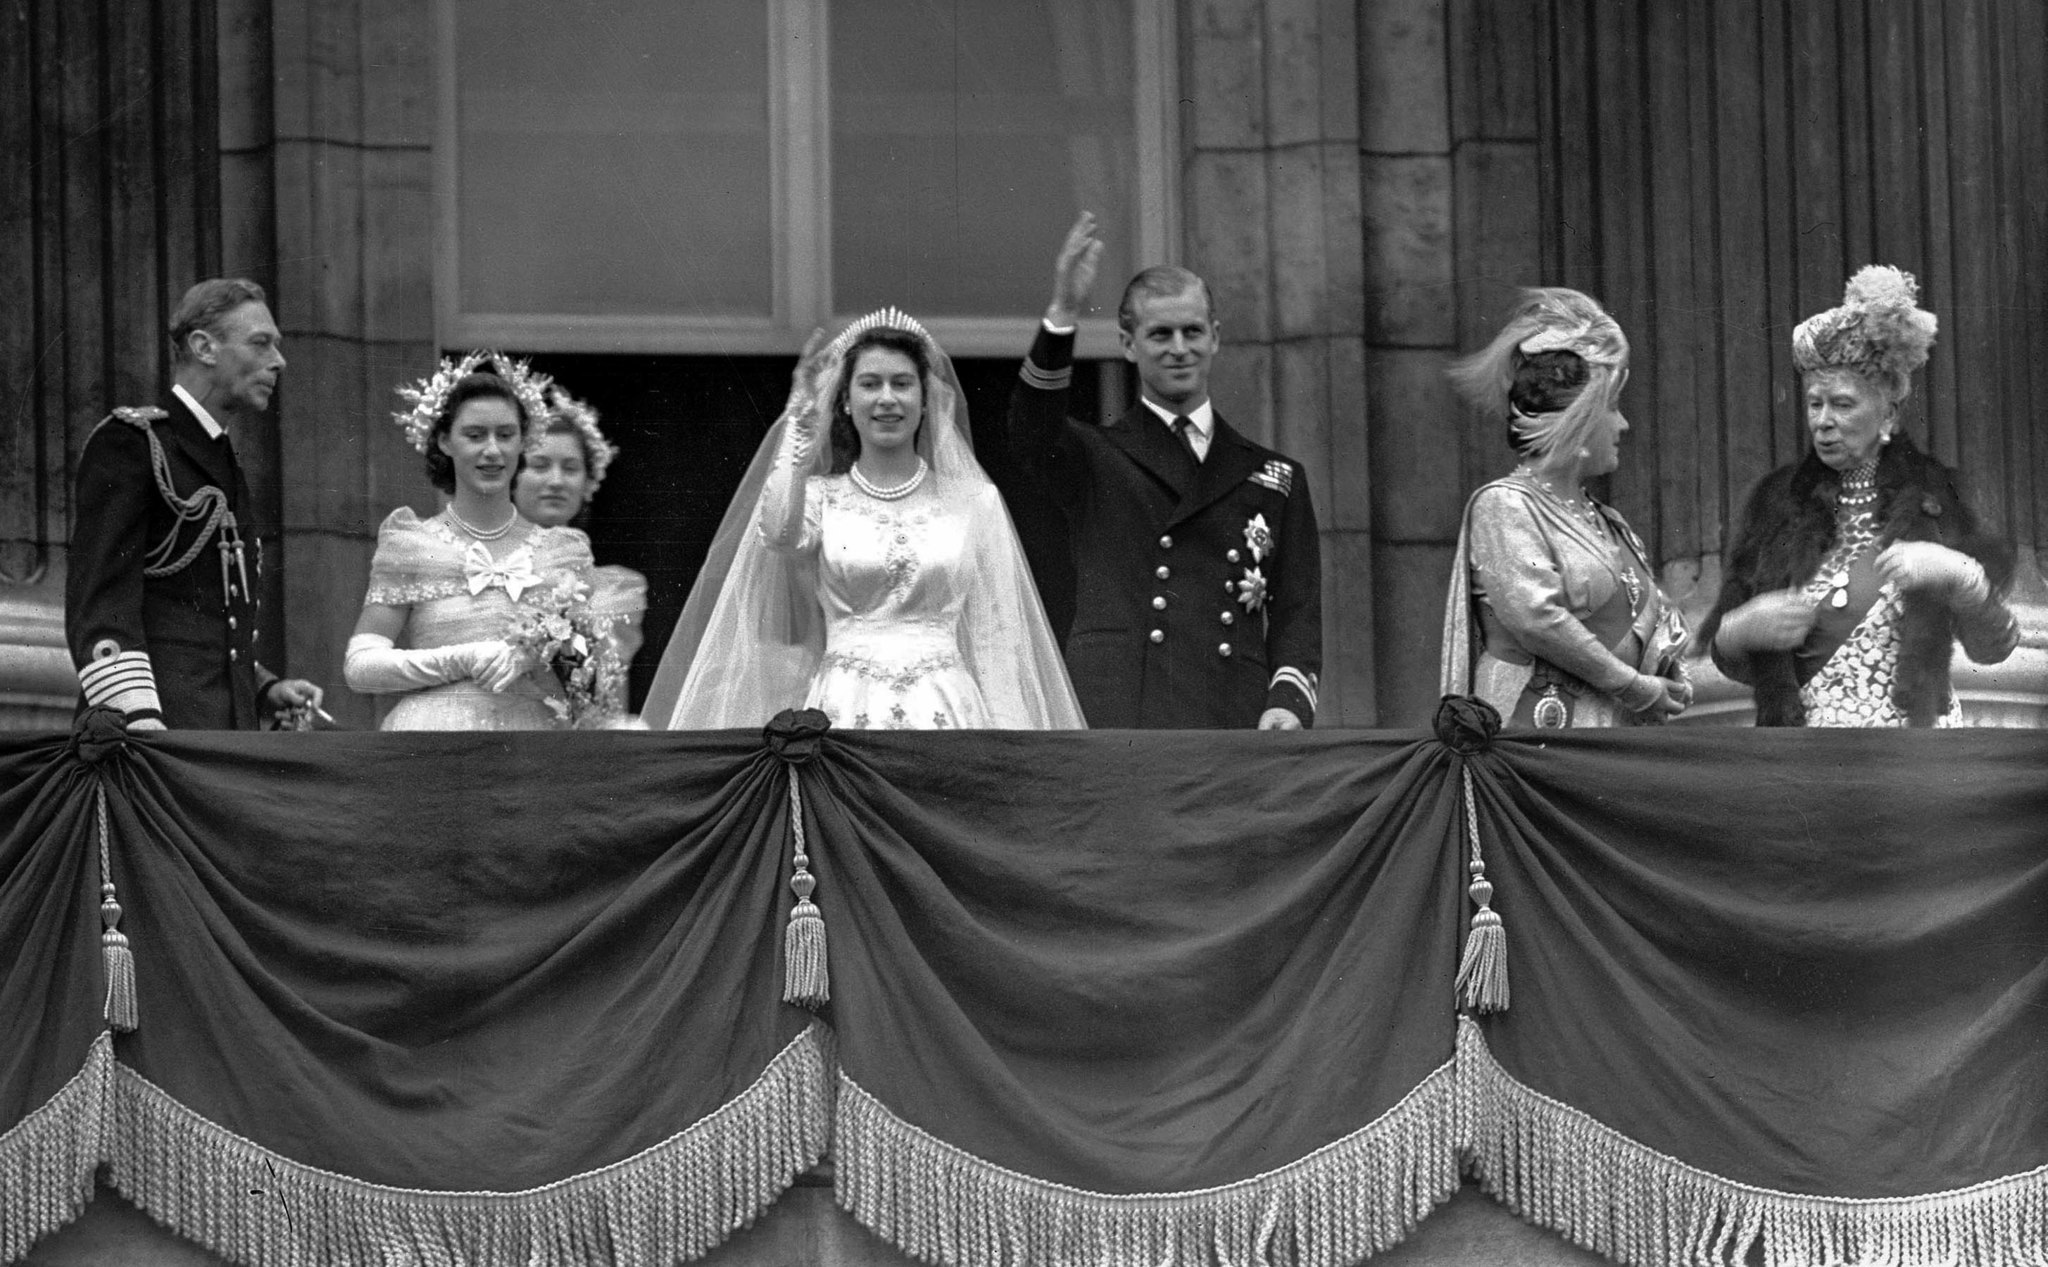 Balcony royal wedding picture